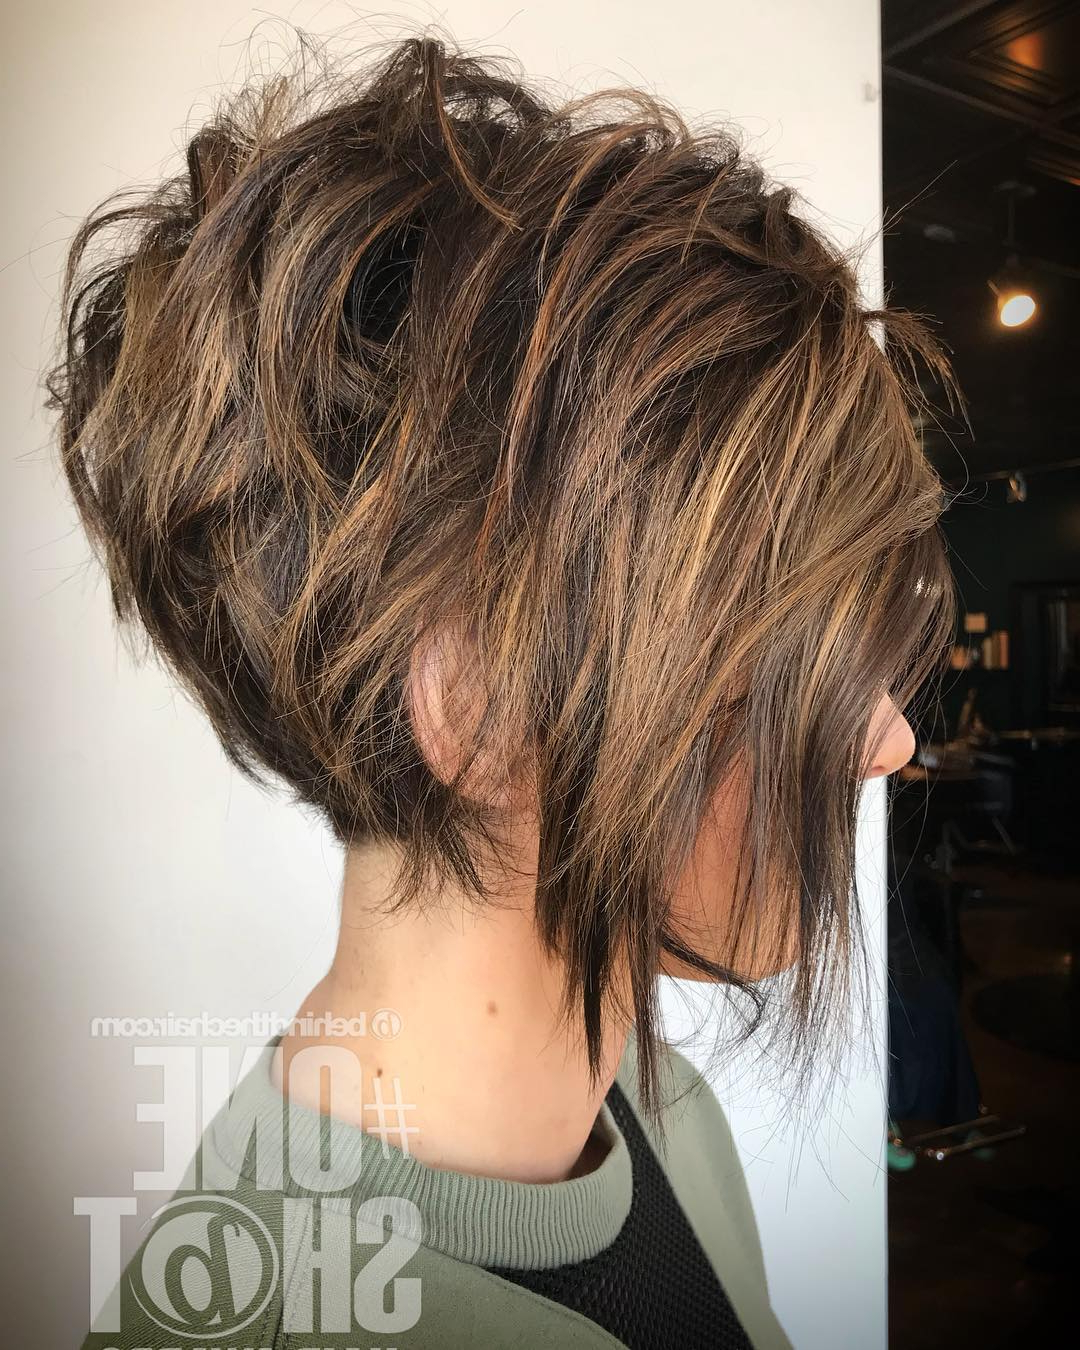 10 Trendy Messy Bob Hairstyles And Haircuts, 2019 Female Short Hair With Regard To Most Up To Date Cute A Line Bob Hairstyles With Volume Towards The Ends (Gallery 8 of 20)